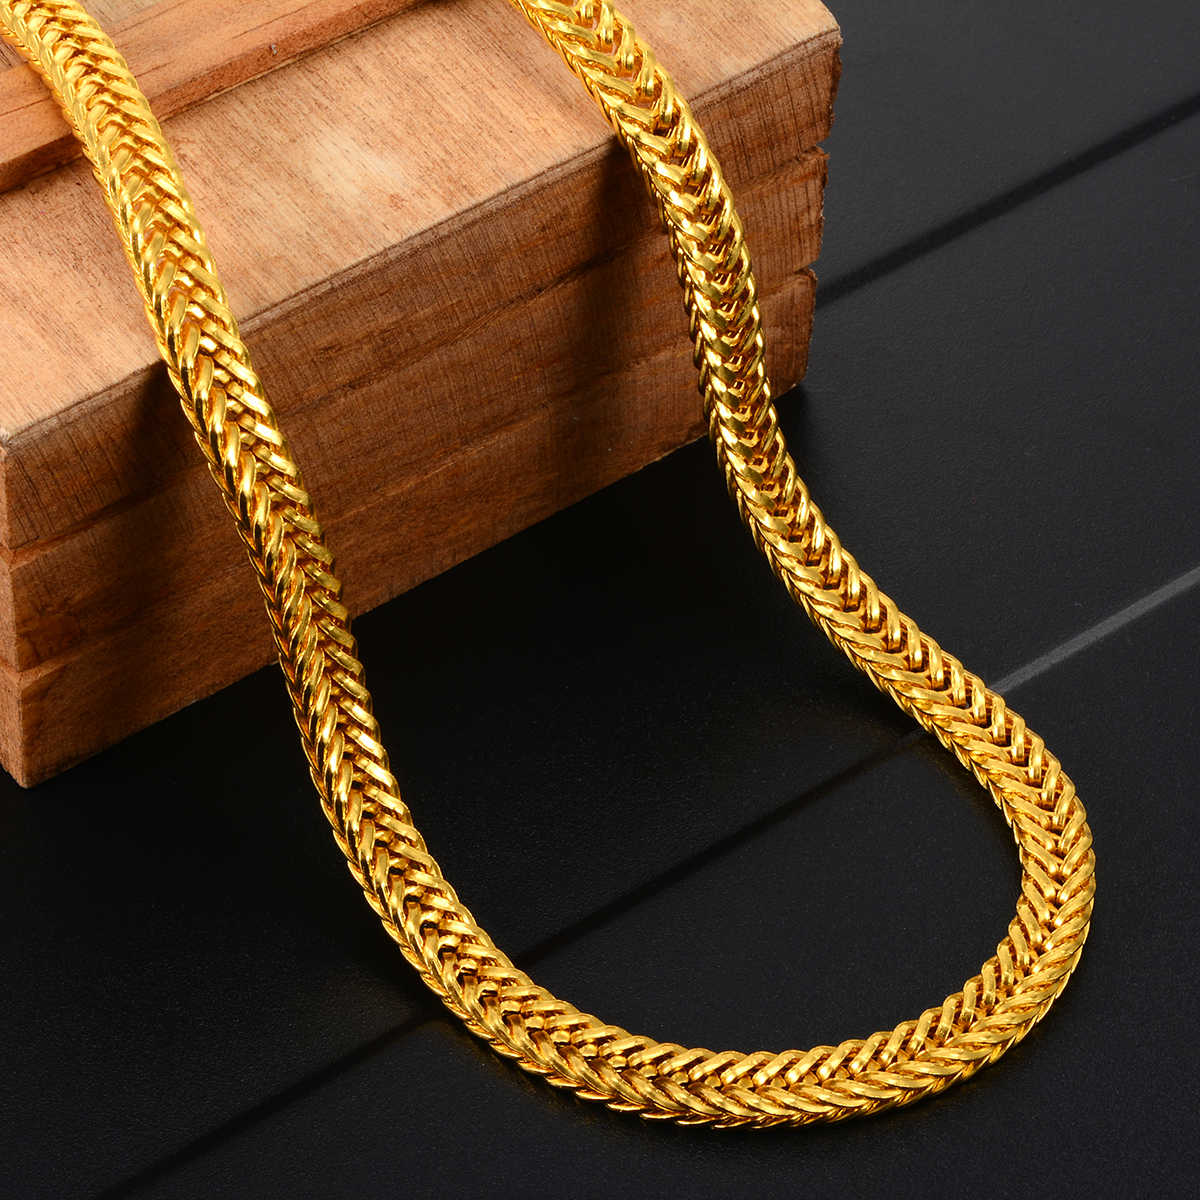 Hip Hop Men Long Gold Chain Necklace 6mm 50cm Cuban Link Chain DIY Jewelry Making Unisex Jewelry Accessories